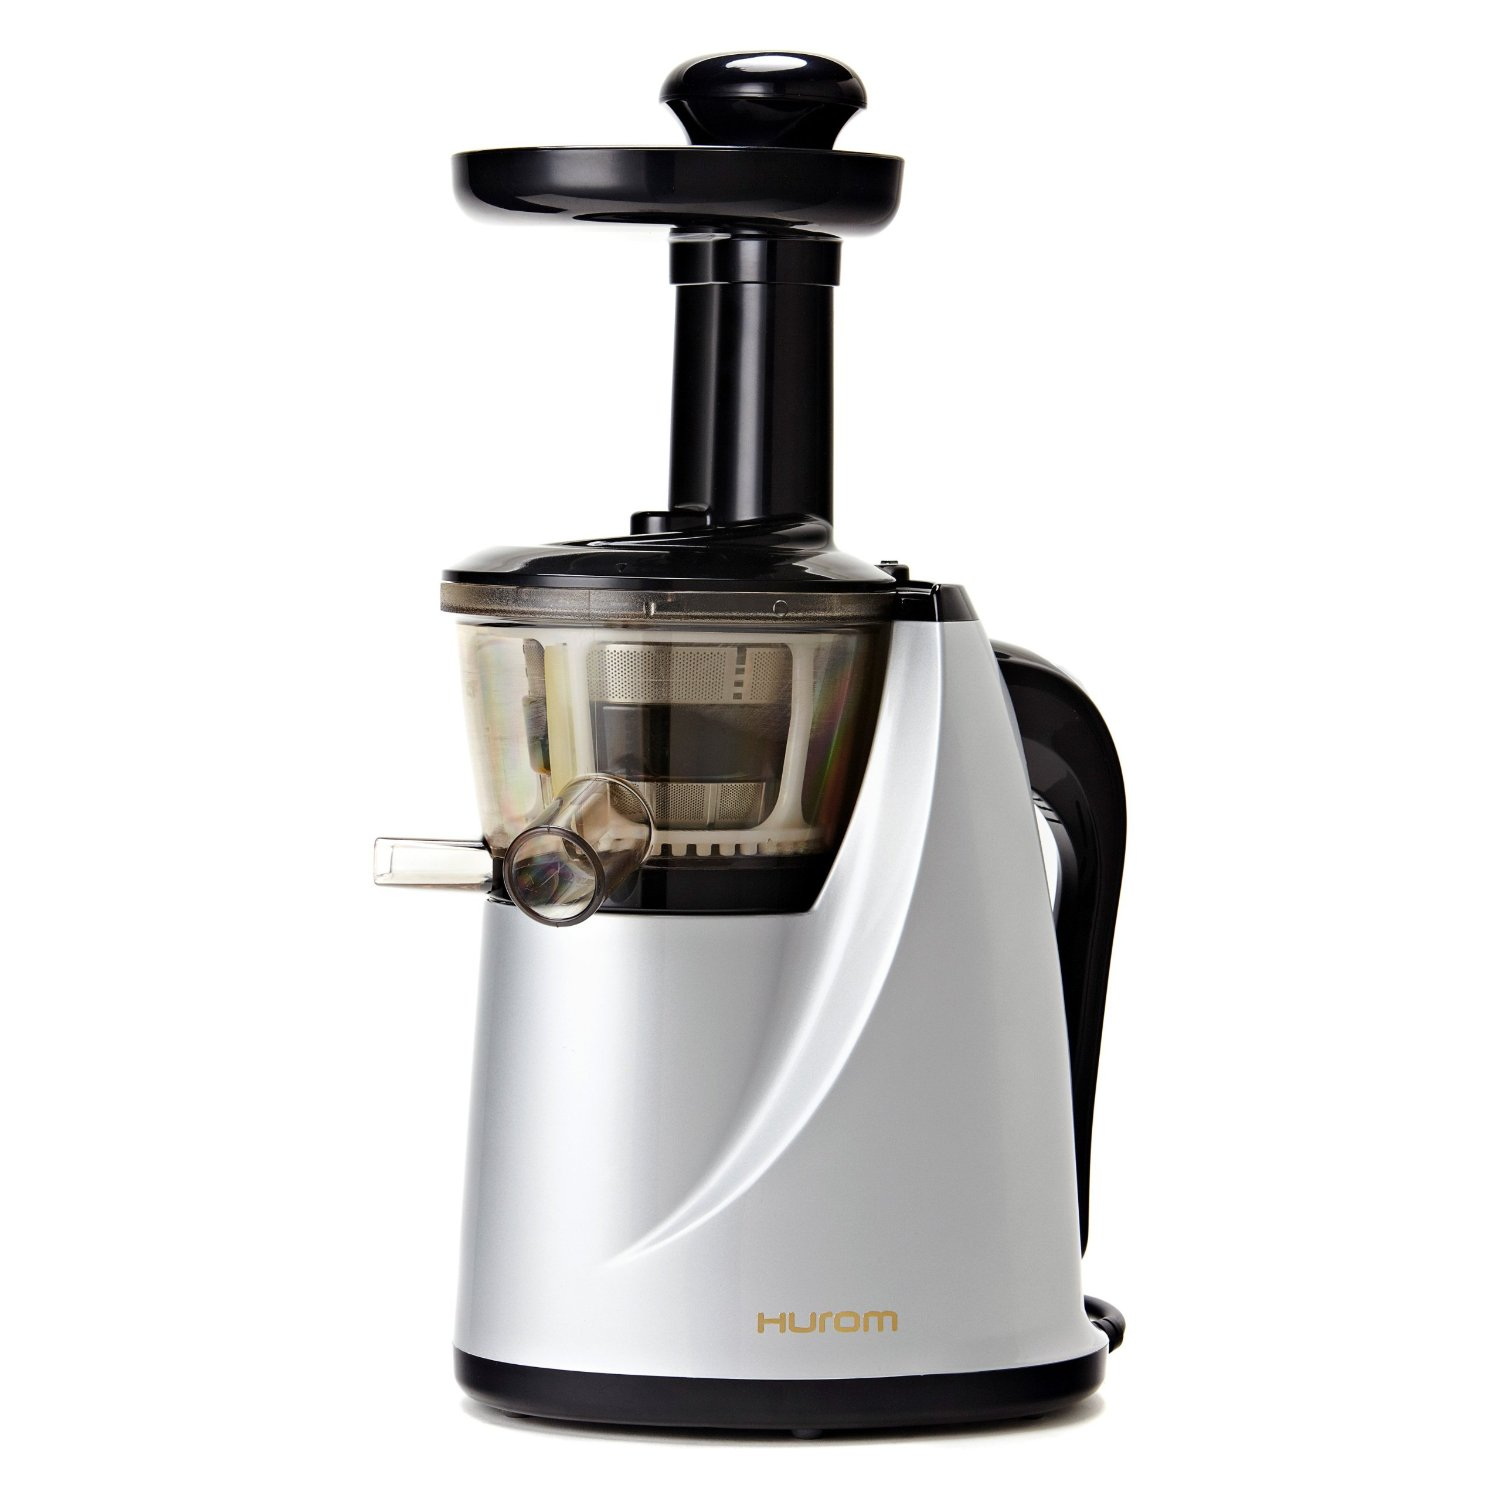 Masida Slow Juicer Review : Hurom HU-100 Masticating Slow Juicer Review - Best Cold Press Juicers